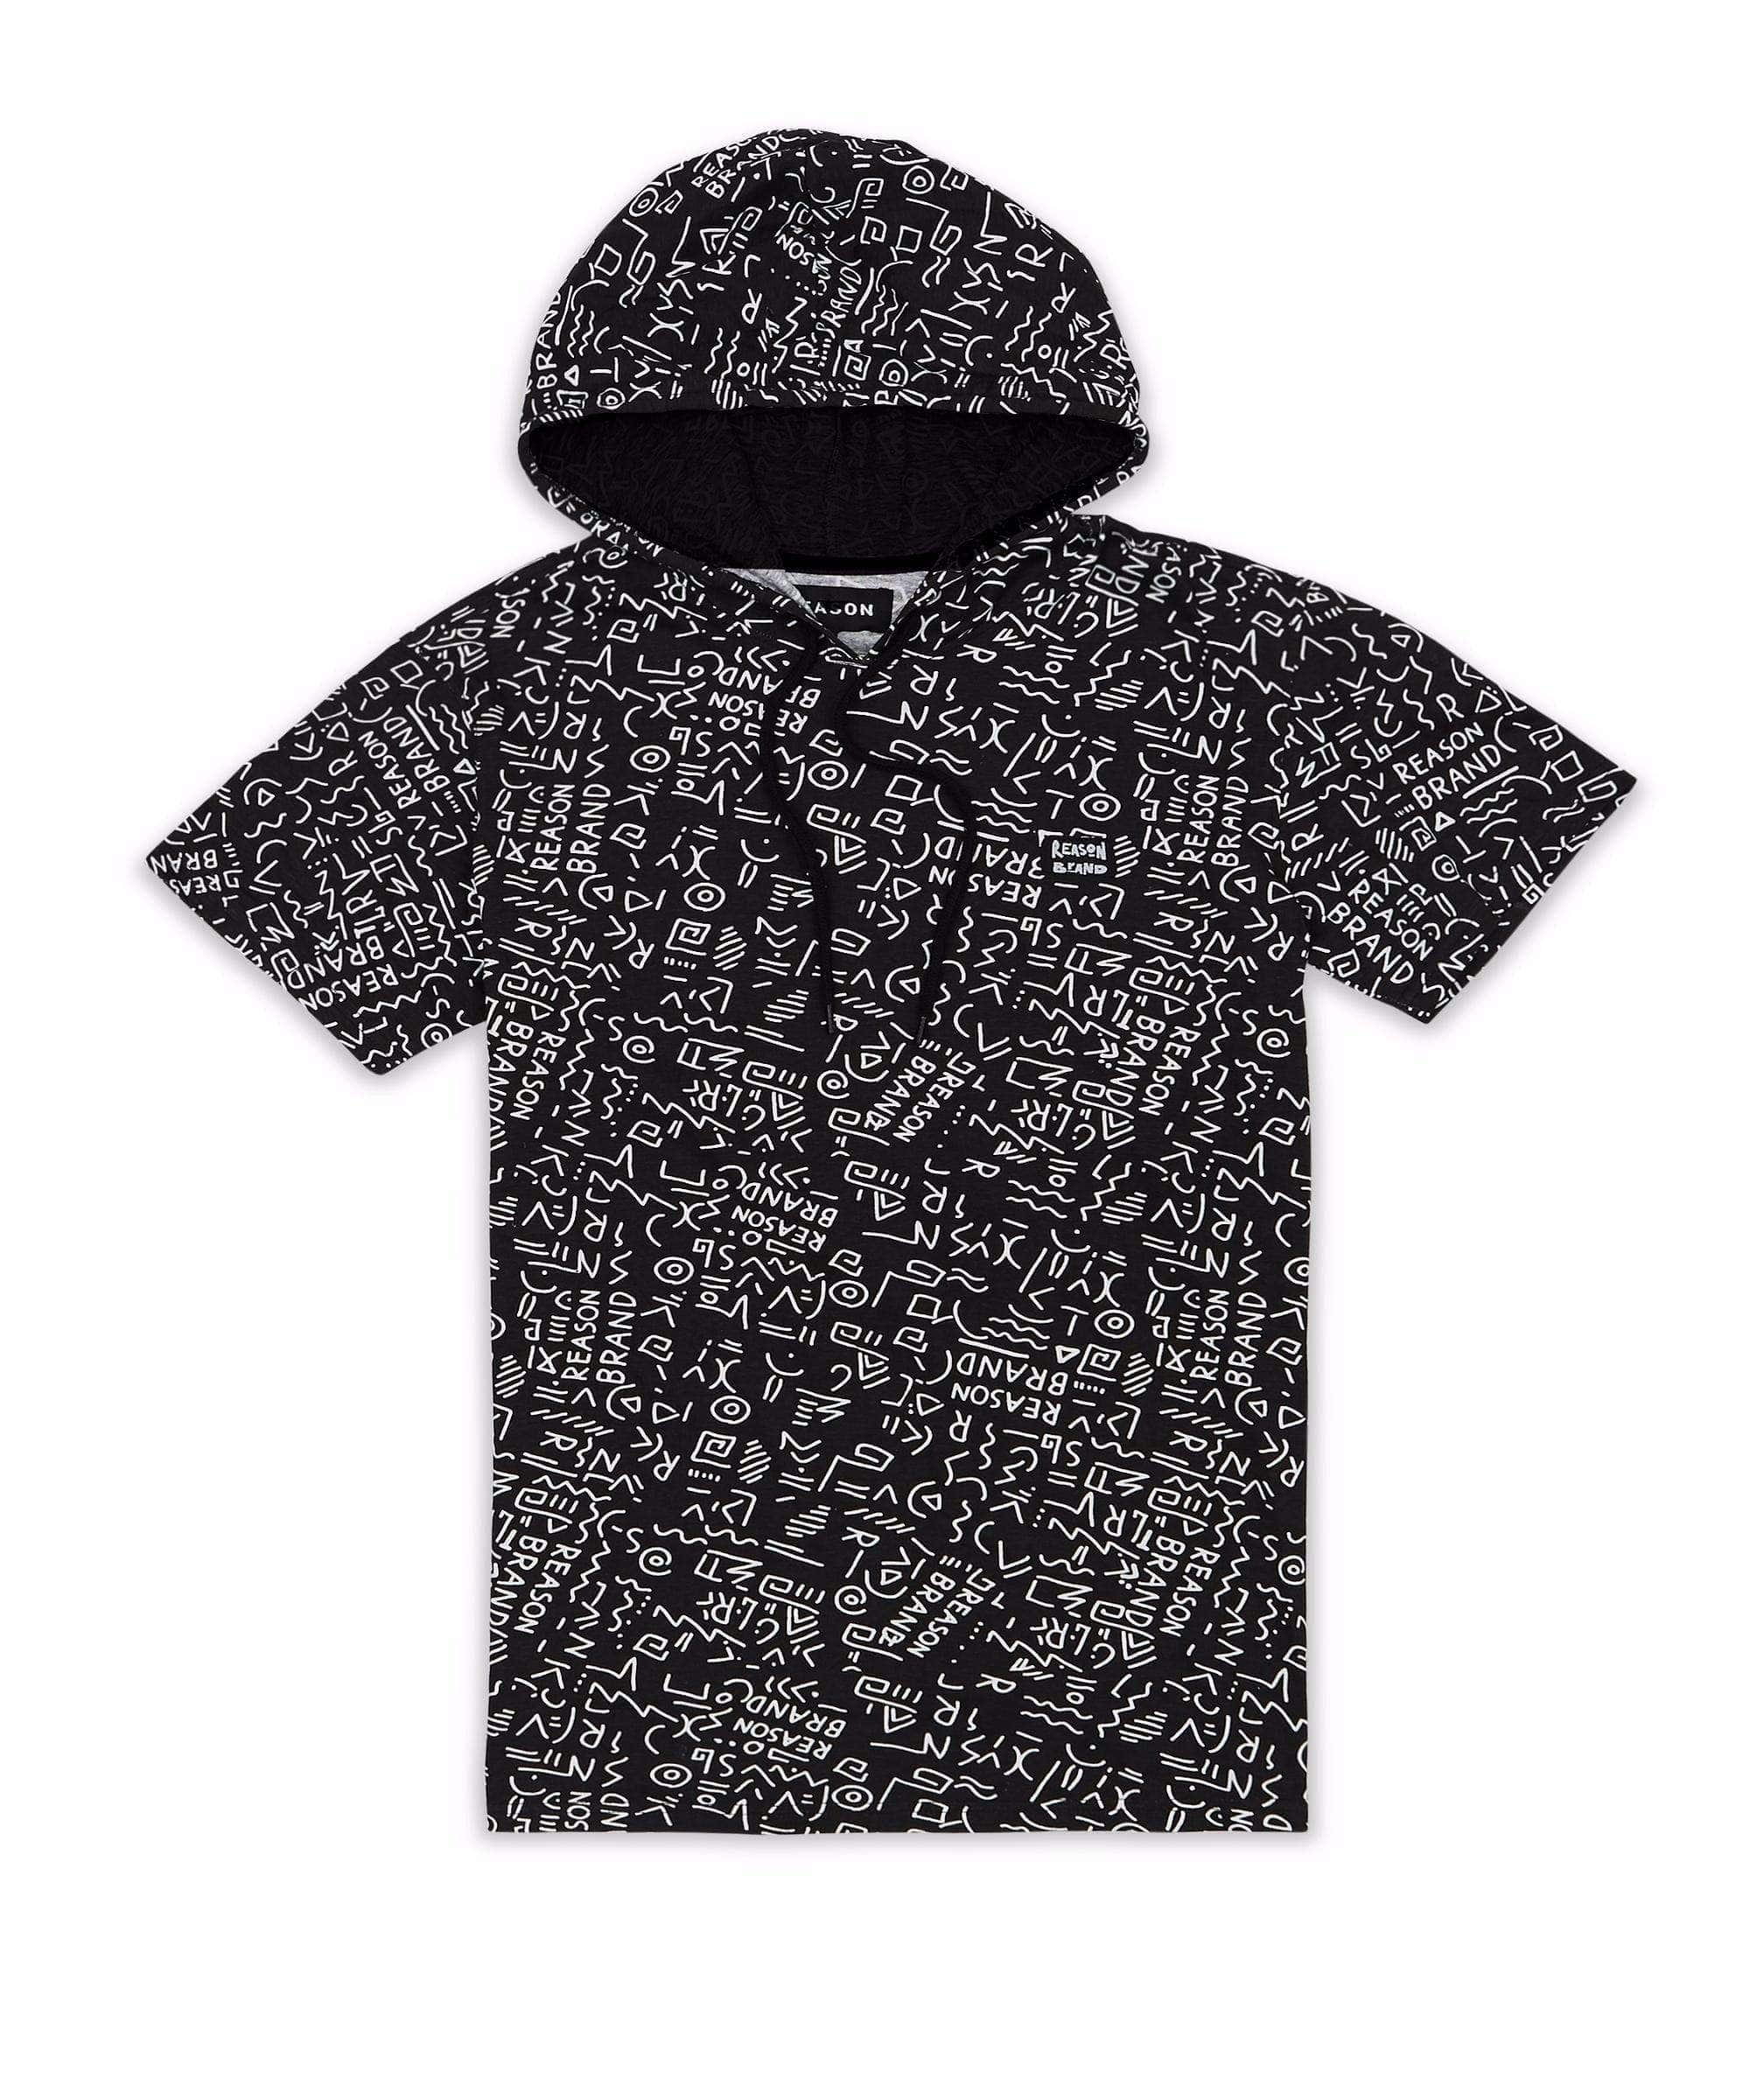 ANCIENT STATIC SS HOODIE - BLACK Reason Clothing